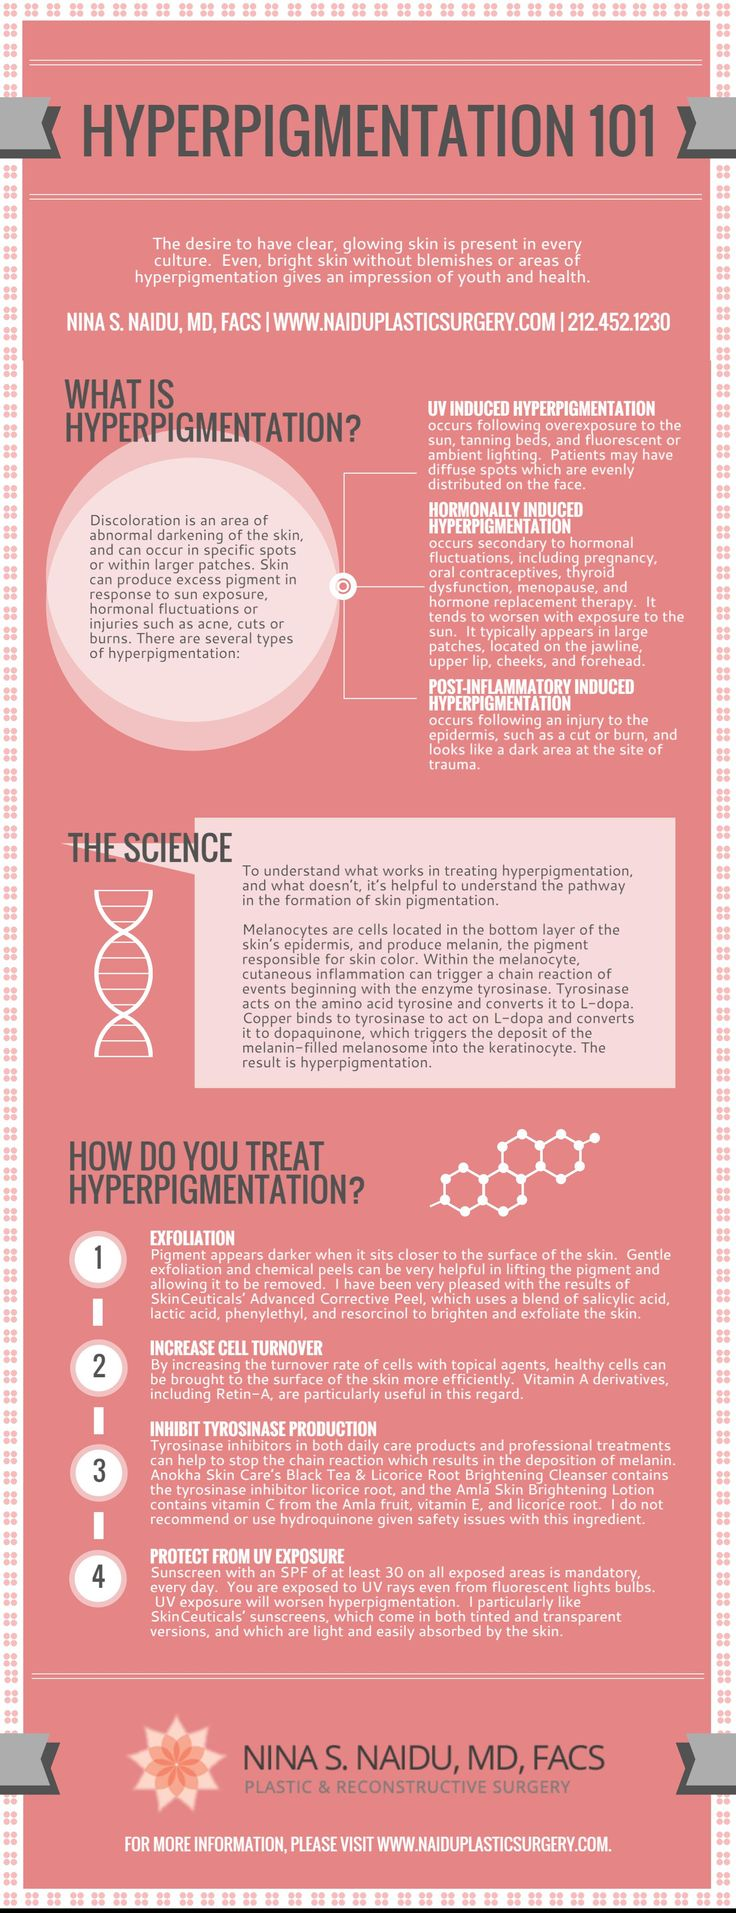 Do you want clear, glowing skin but are suffering from hyperpigmentation? Dr. Nina S. Naidu, a top board certified plastic surgeon in New York, has designed this educational infographic on hyperpigmentation to help patients understand what it is and how they can treat it. Read more here: http://www.naiduplasticsurgery.com/